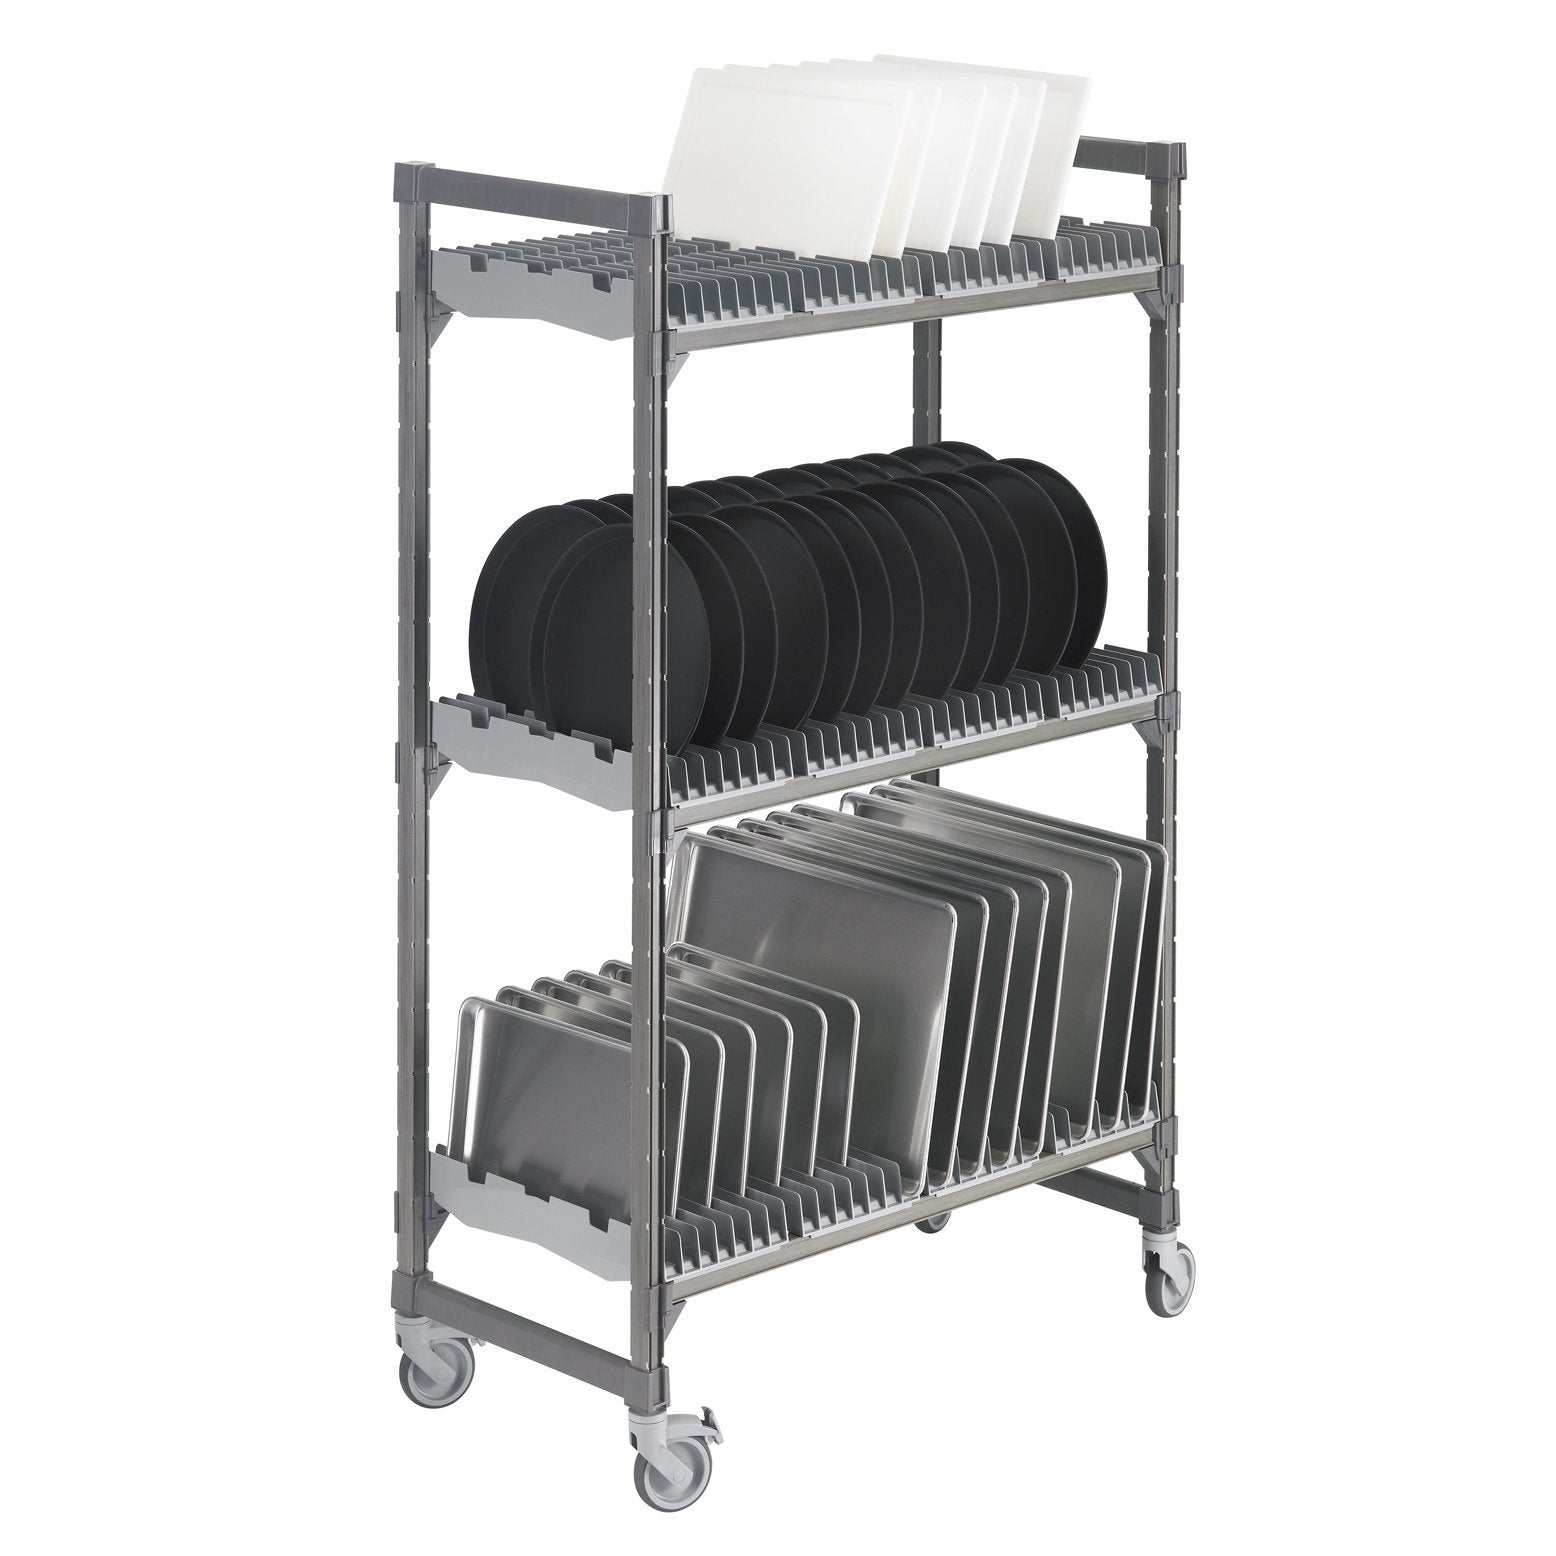 Cambro Elements Drying Rack Cart 610x1220mm EMU244878DRPKG